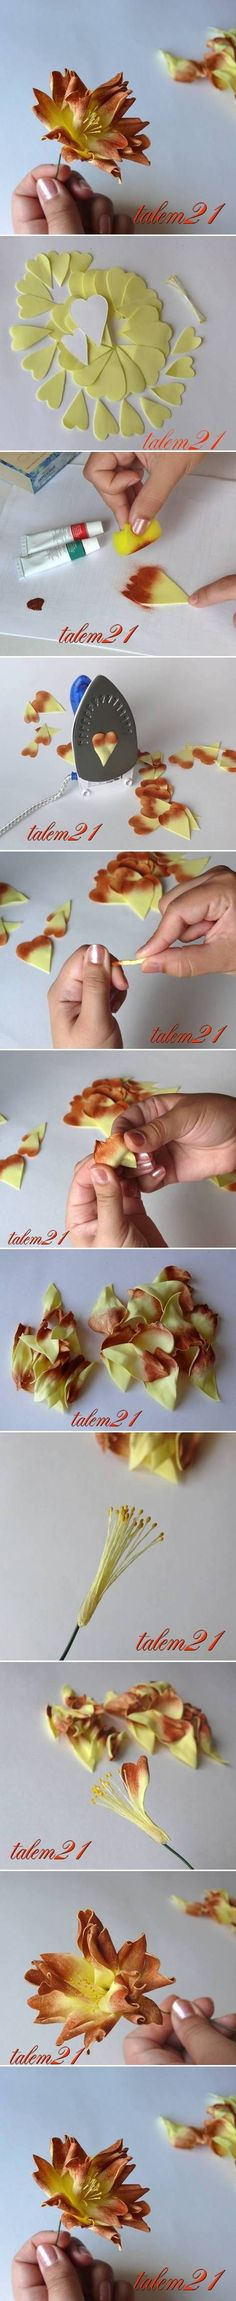 How To Make Fantasy Flowers step by step DIY tutorial instructions / How To Instructions on imgfave